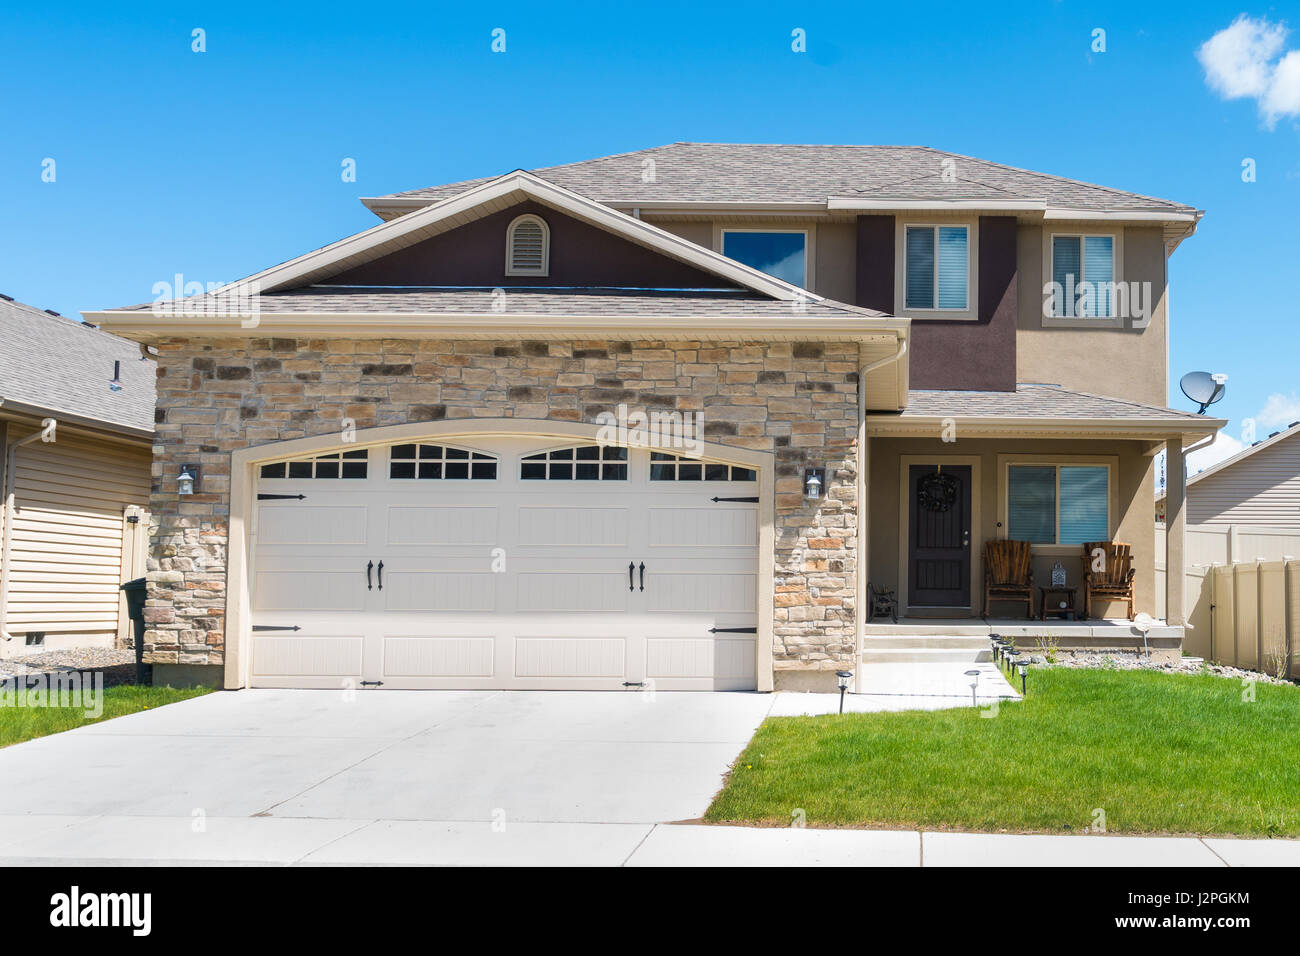 Contemporary Split Level House With Garage In Front Stock Photo